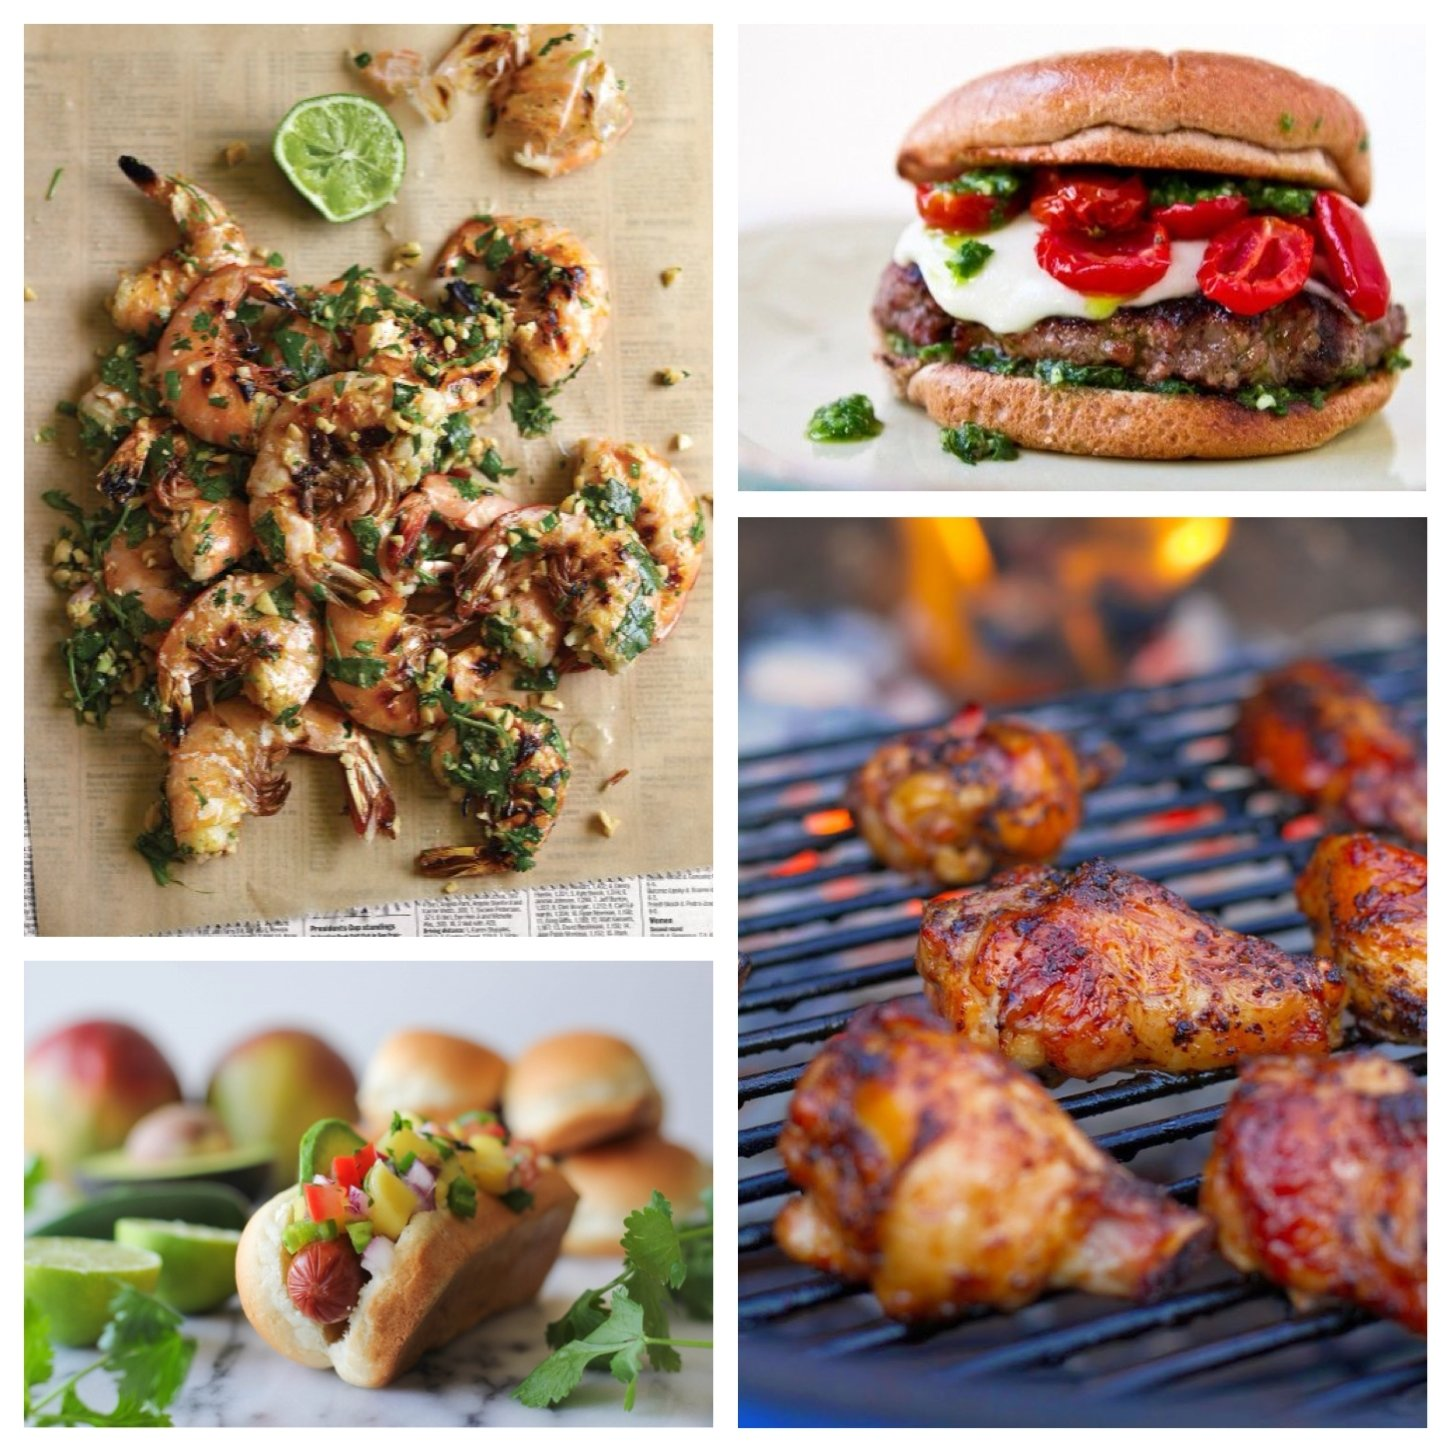 10 Famous 4Th Of July Grilling Ideas fourth of july life in classics 1 2021